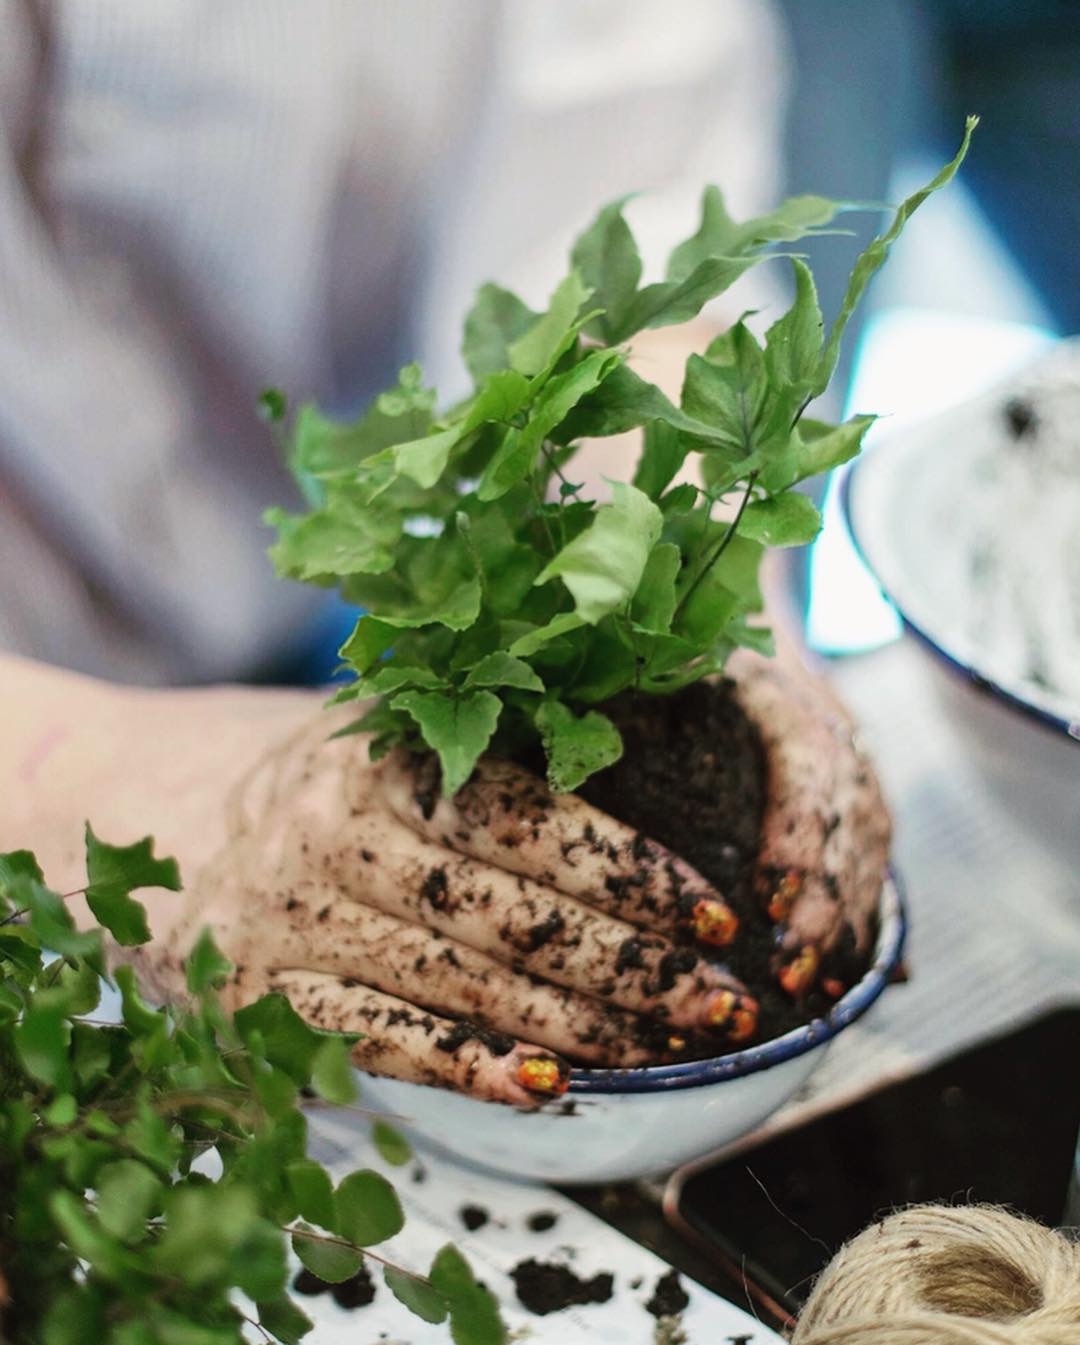 PILEA PLANT SHOP KOKEDAMA MAKING.JPG